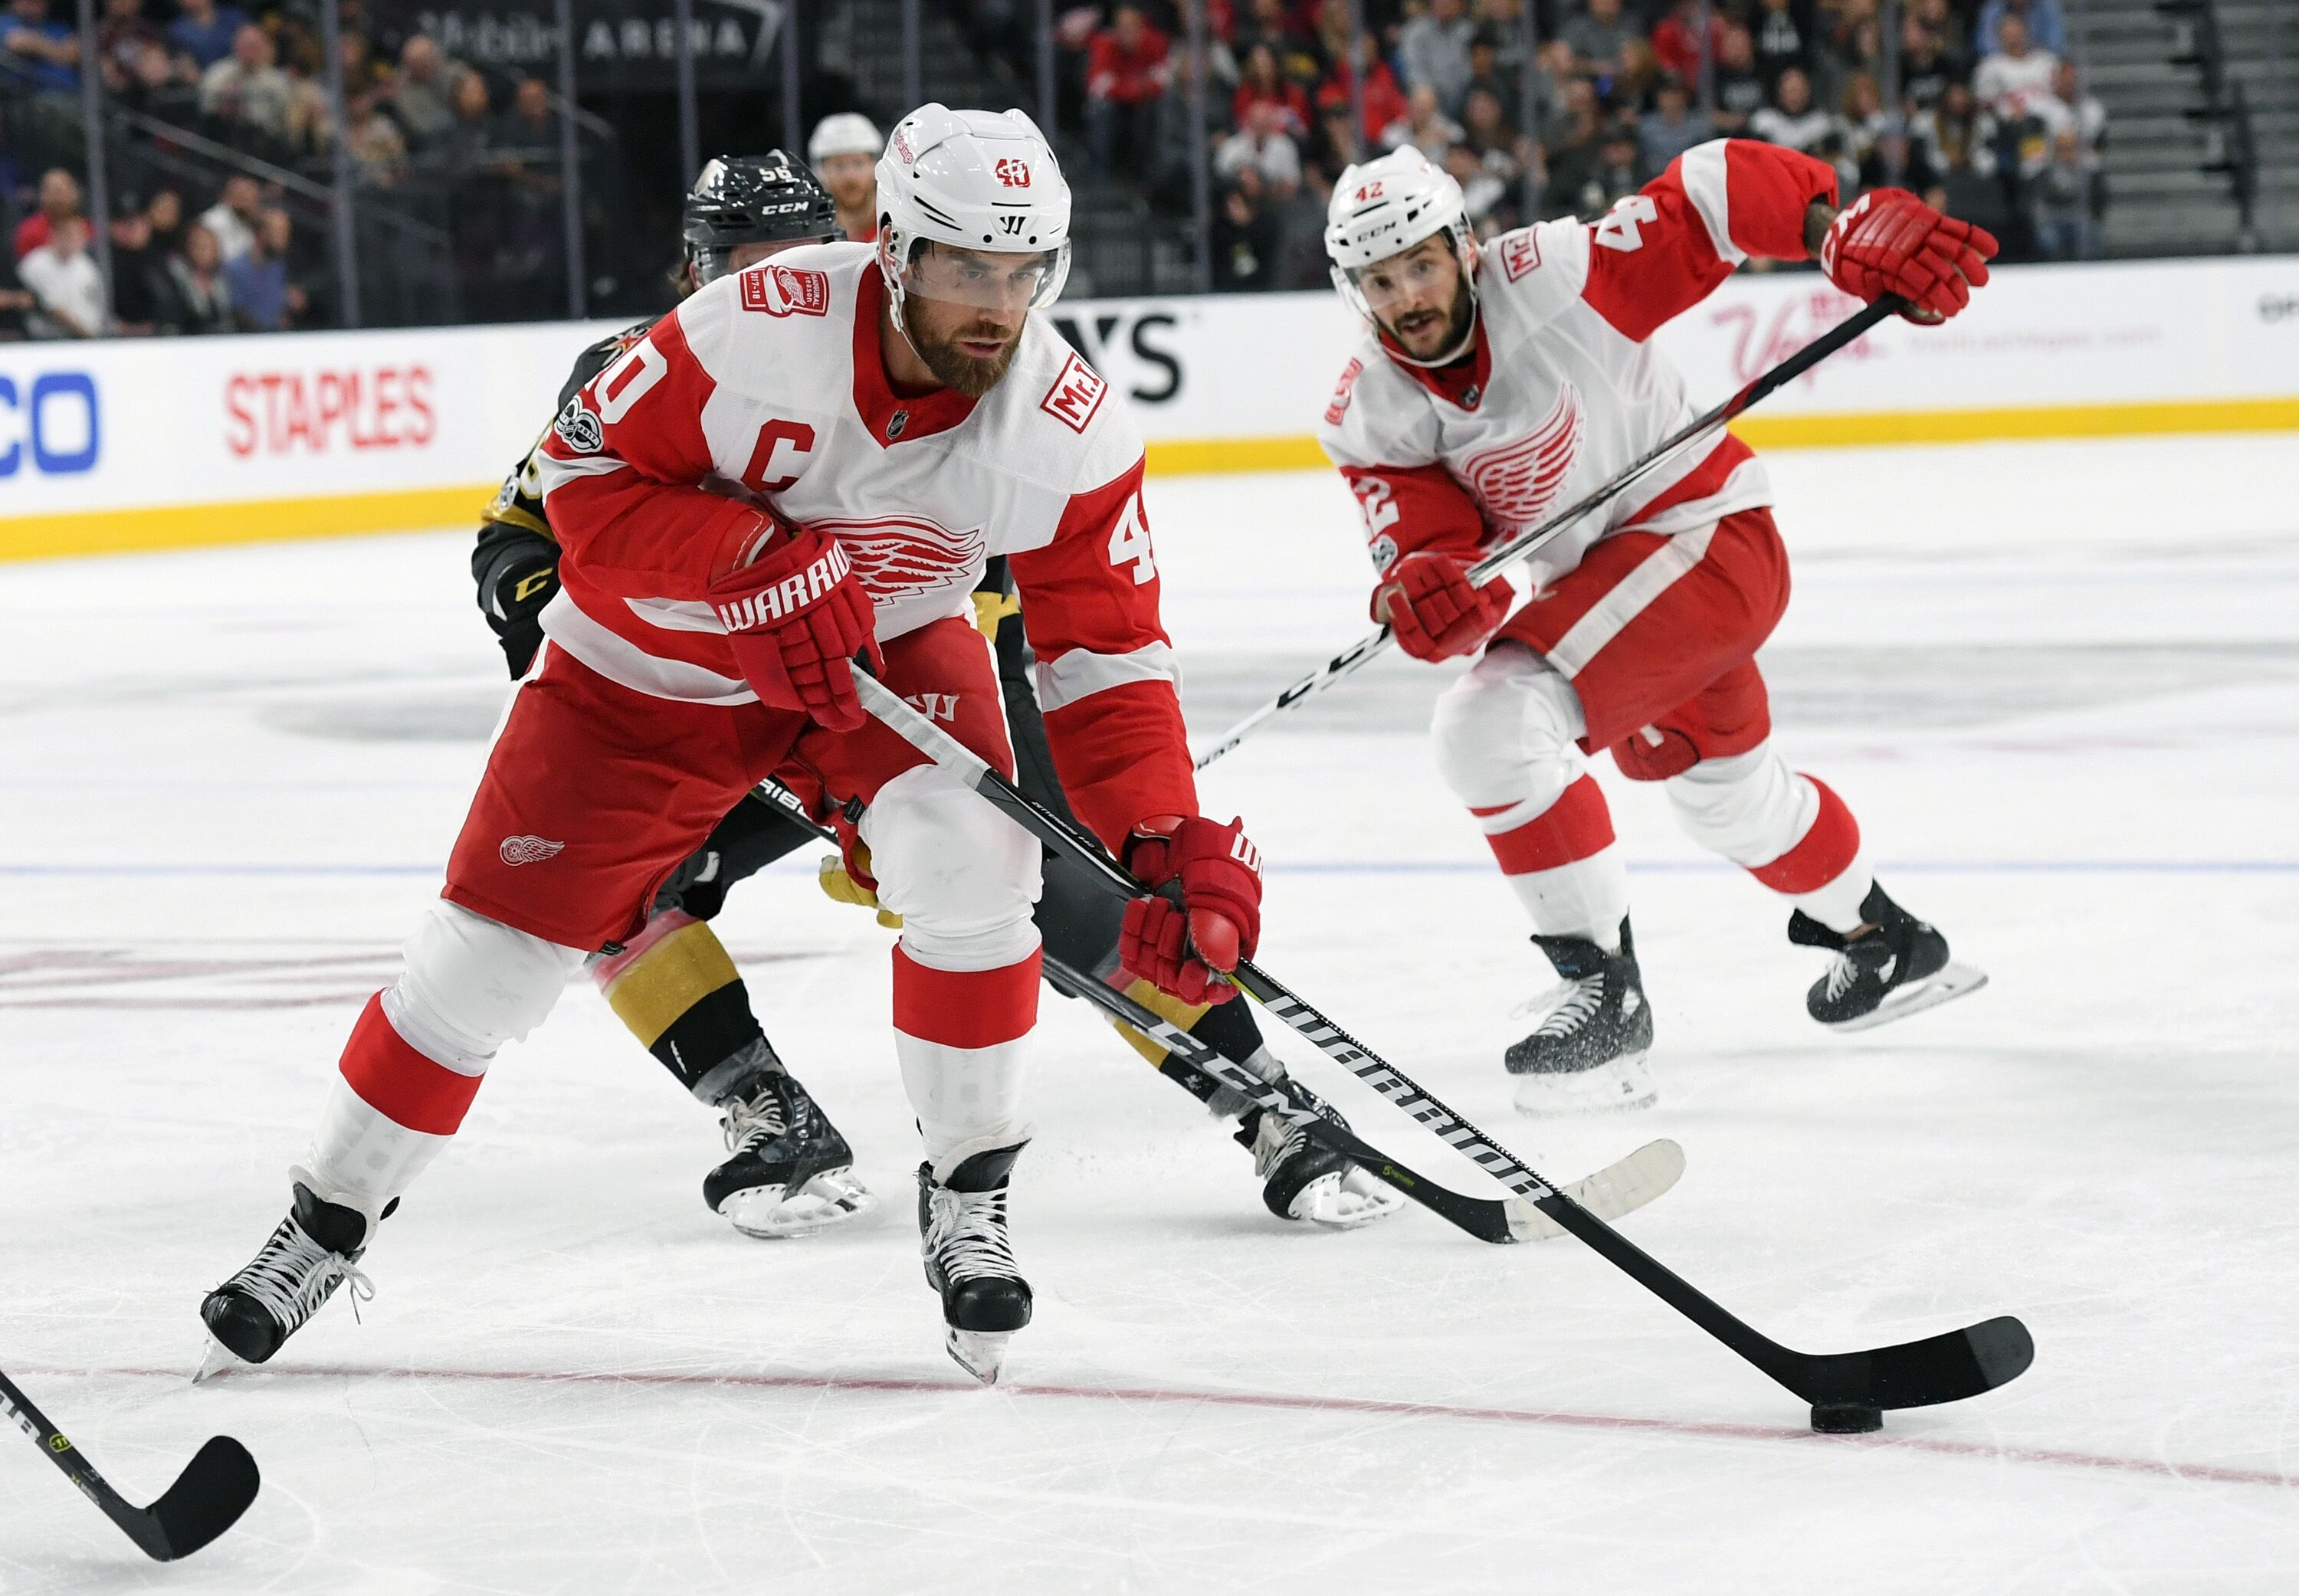 Red wings and golden showers